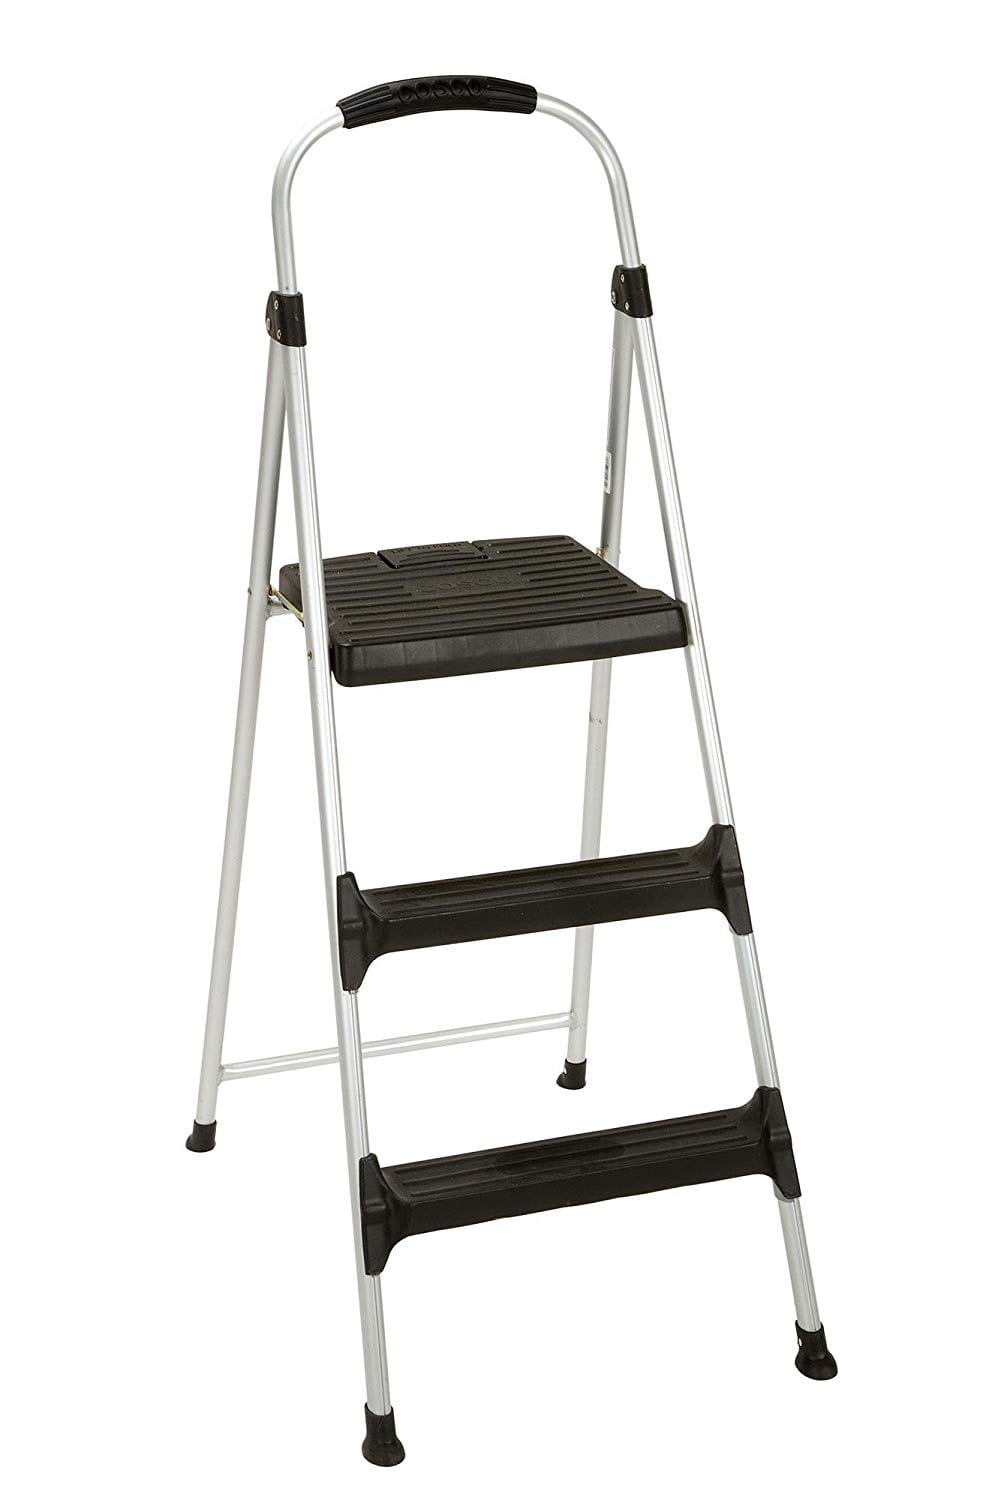 Cosco Signature Step Stool Three-Step Aluminum